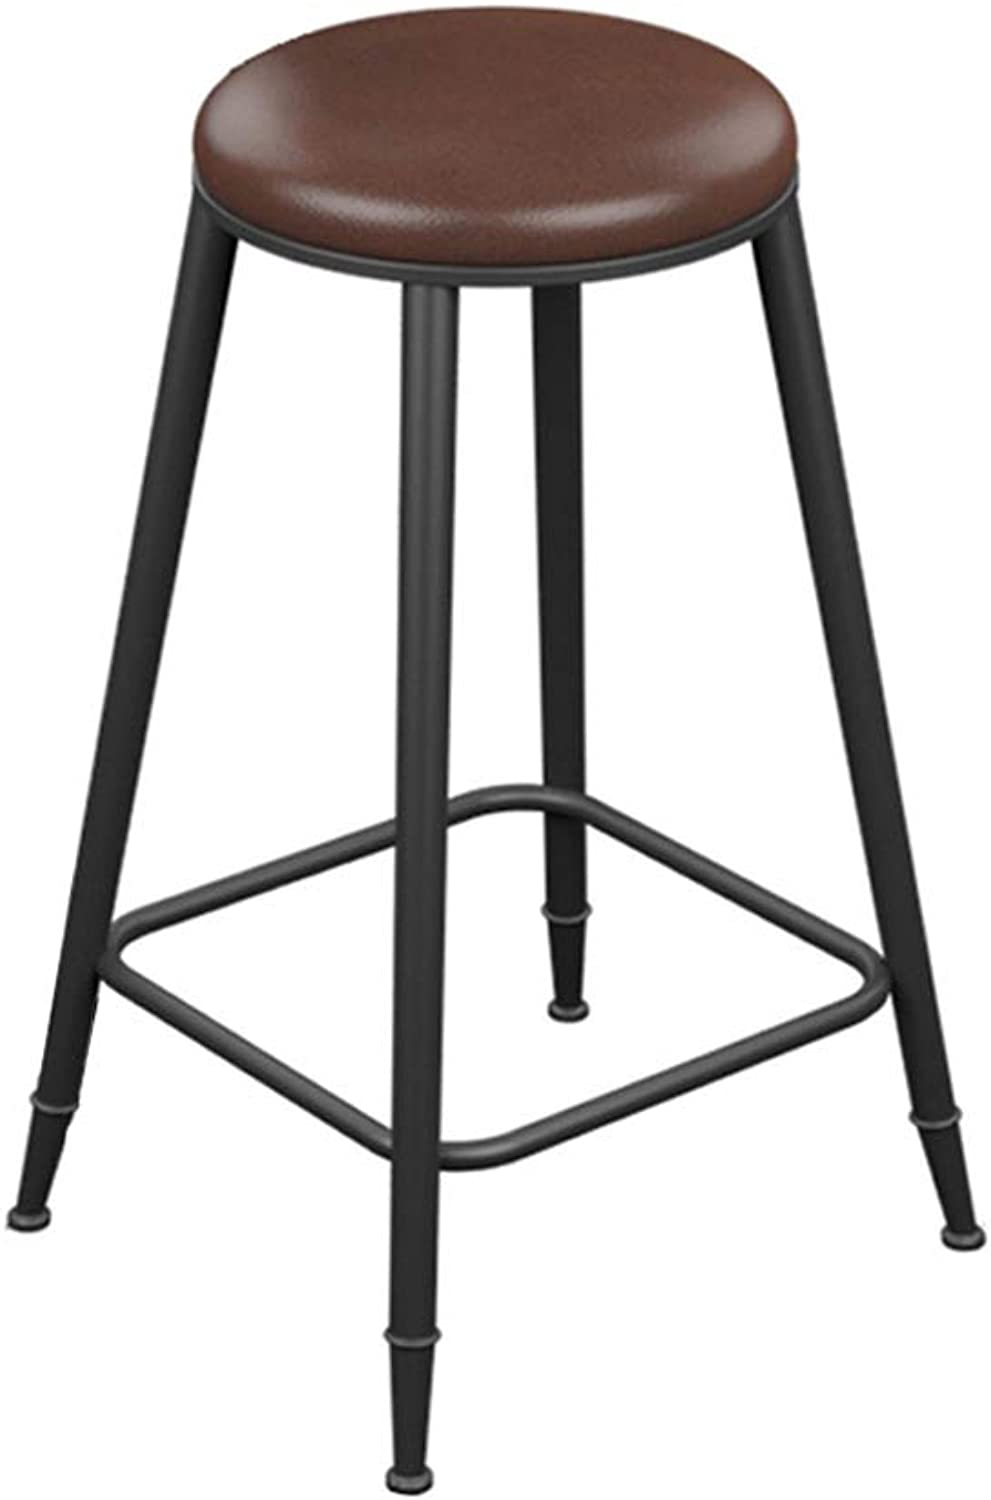 Barstools Counter Stool Bar Chair Pub Kitchen Breakfast Dining Chair Black Metal Frame Soft Round Seat Max Load 150kg (Size   45CM)